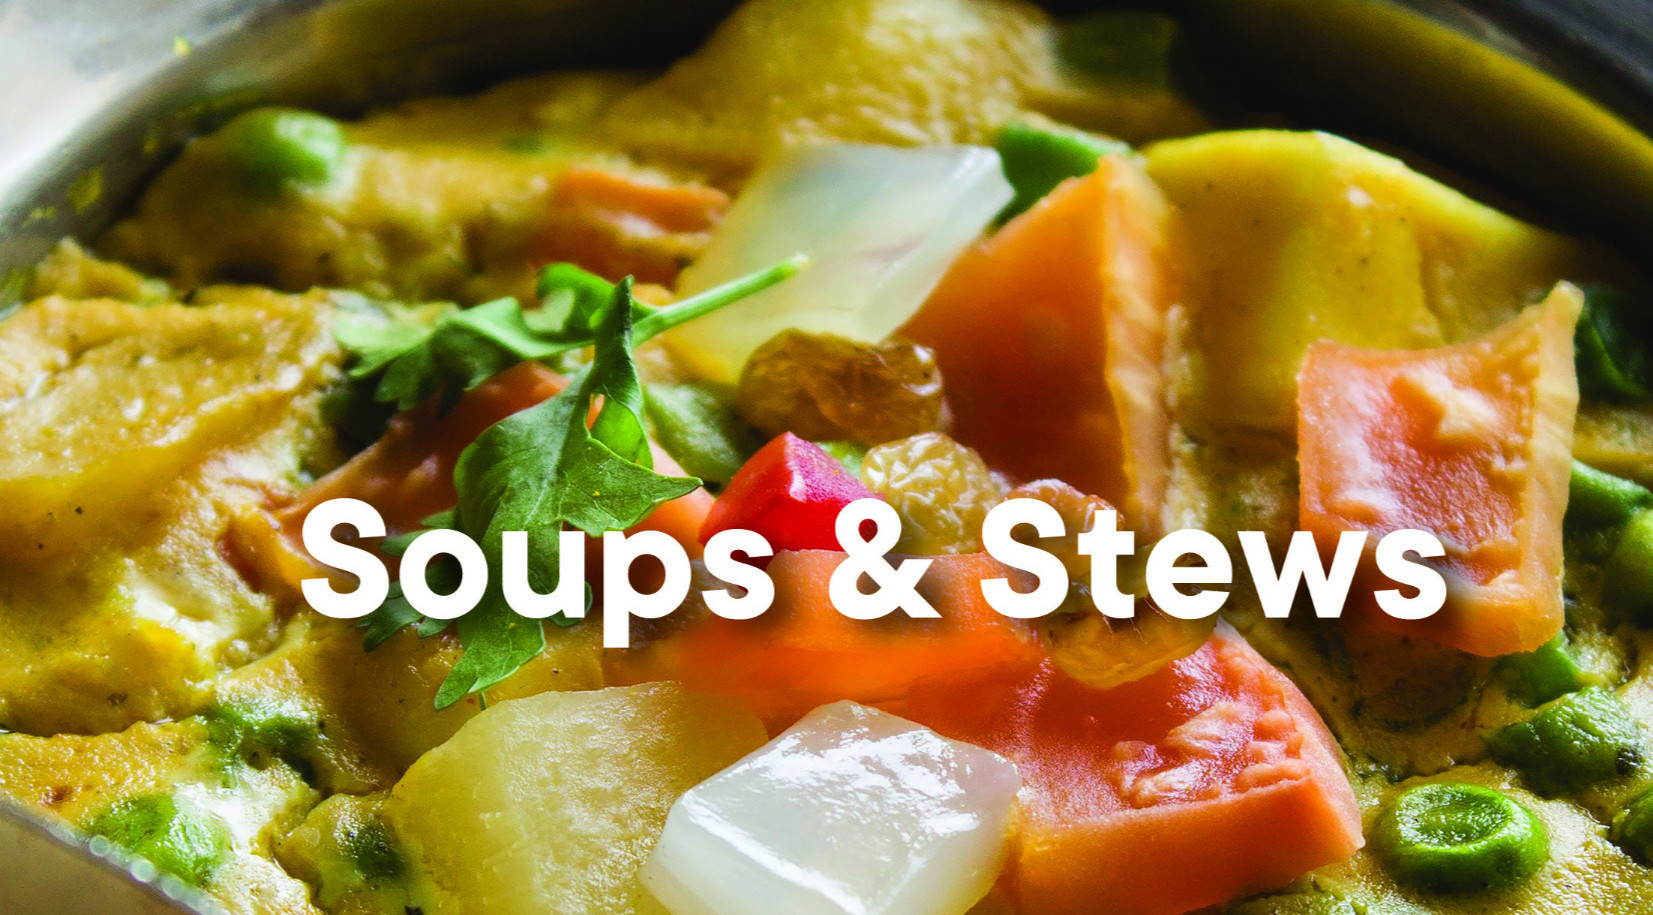 Soups%2520%2526%2520Stews_graphic_edited